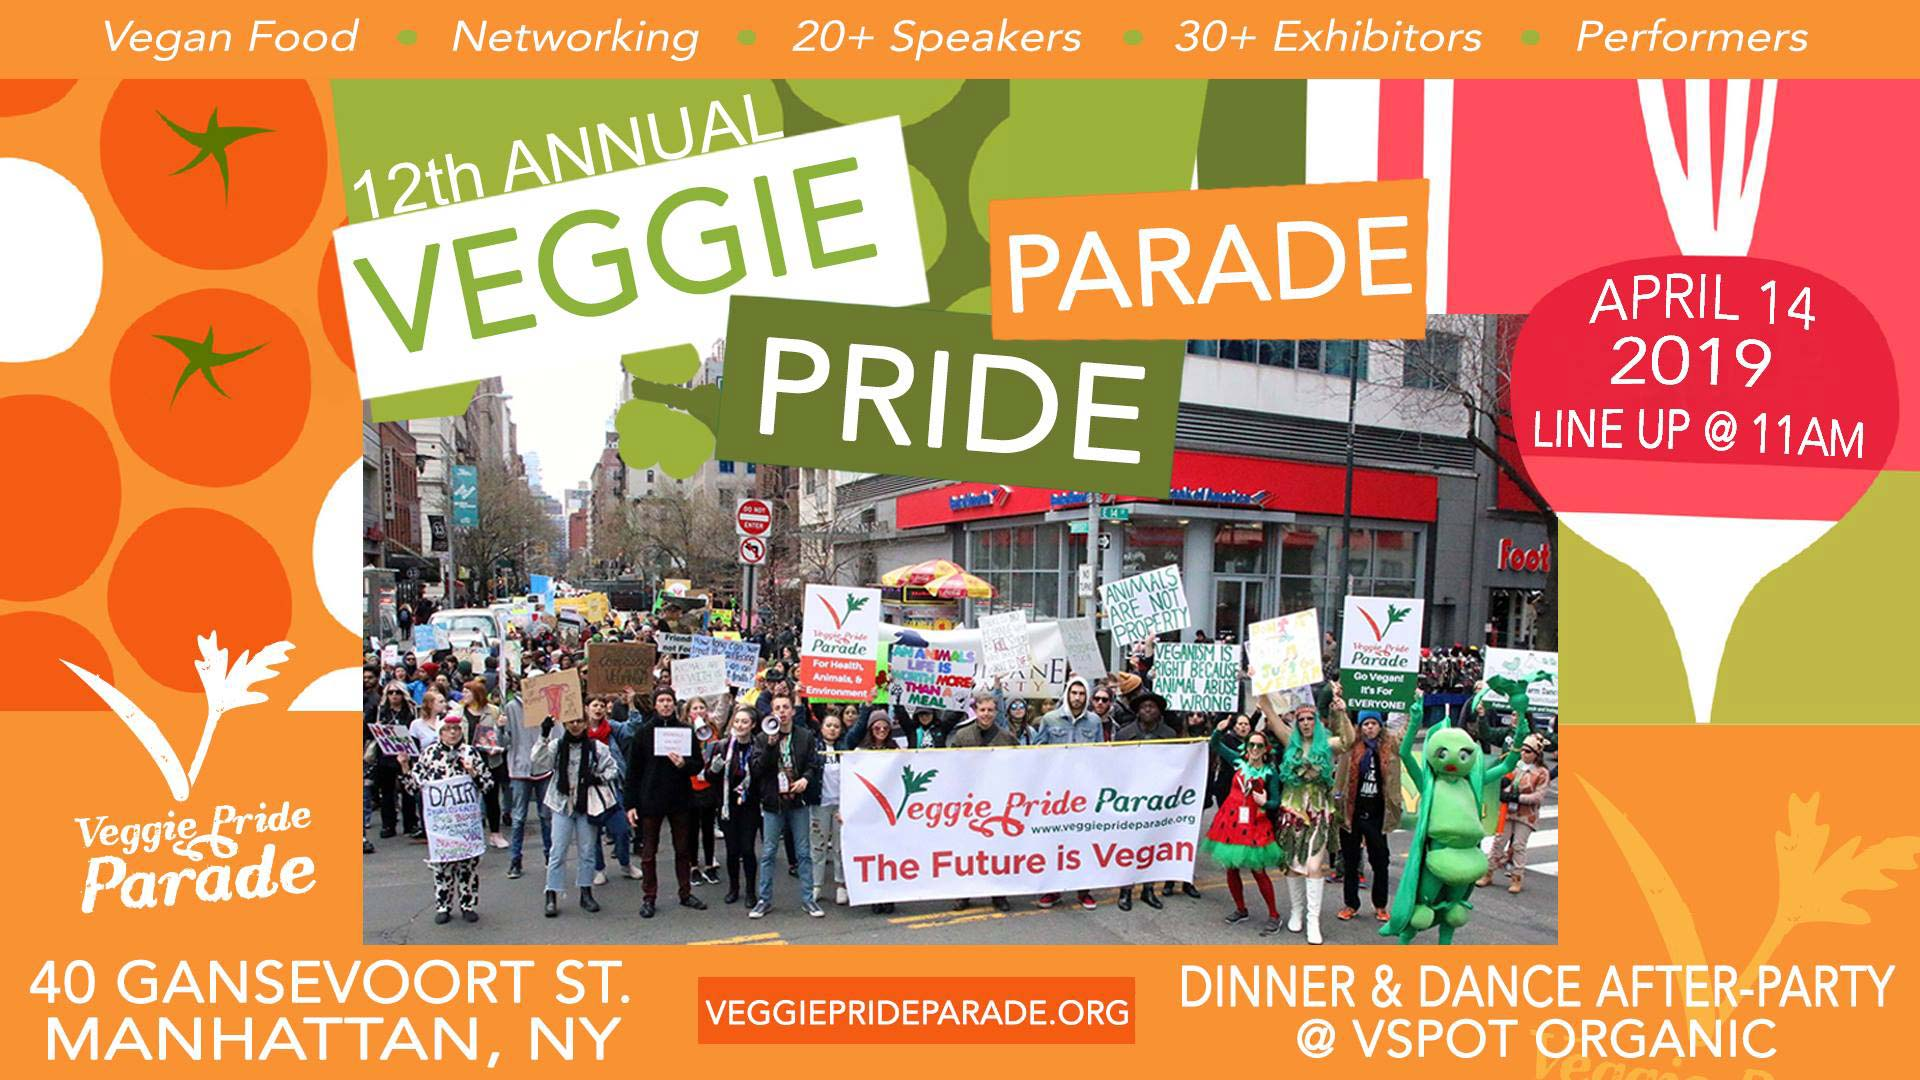 Poster for the 12th annual veggie pride parade includes photo of previous parade